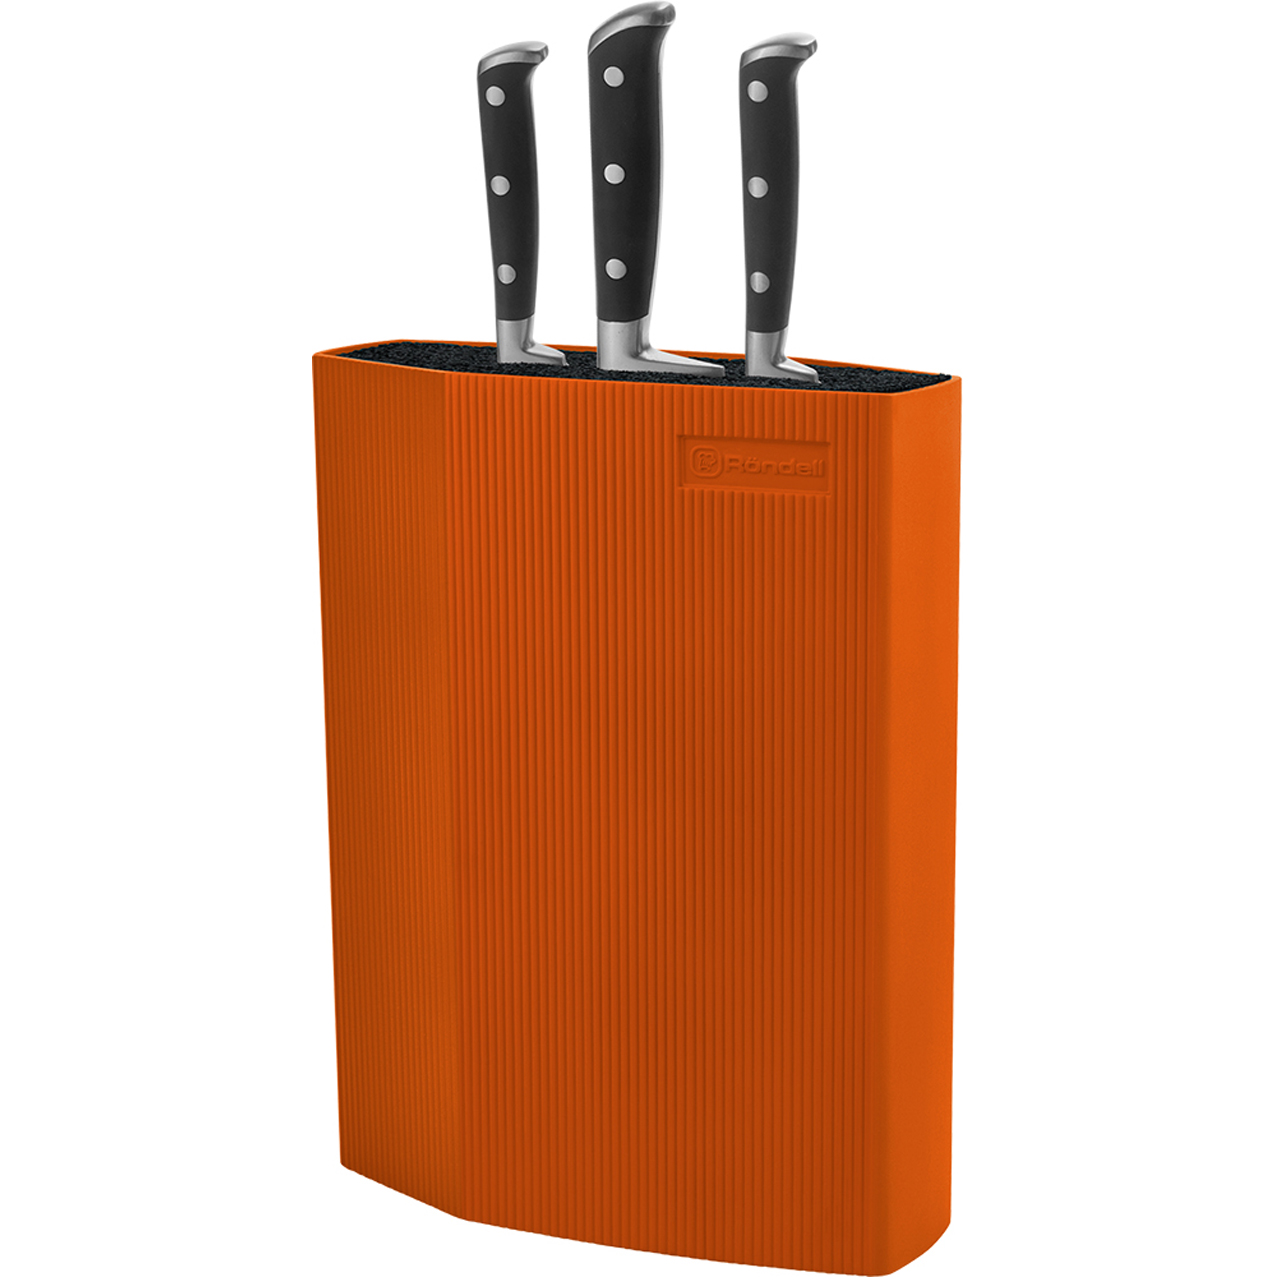 Фото - Stand for knives Rondell Orange RD-470 360 degree round finger ring mobile phone smartphone stand holder